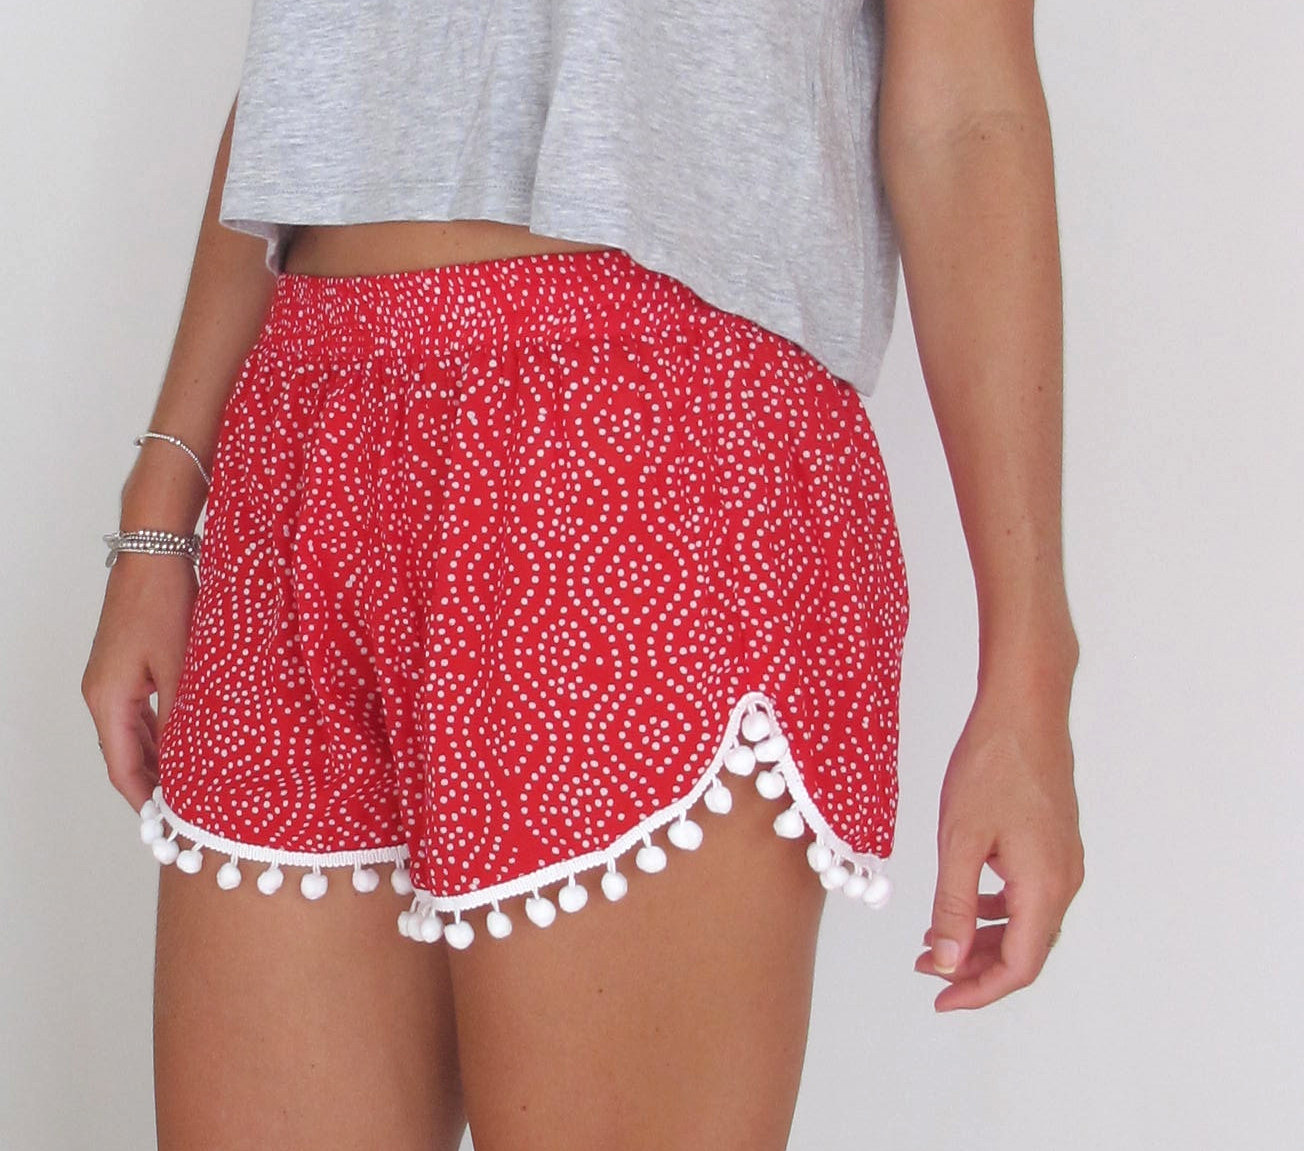 Red and white polkadot print